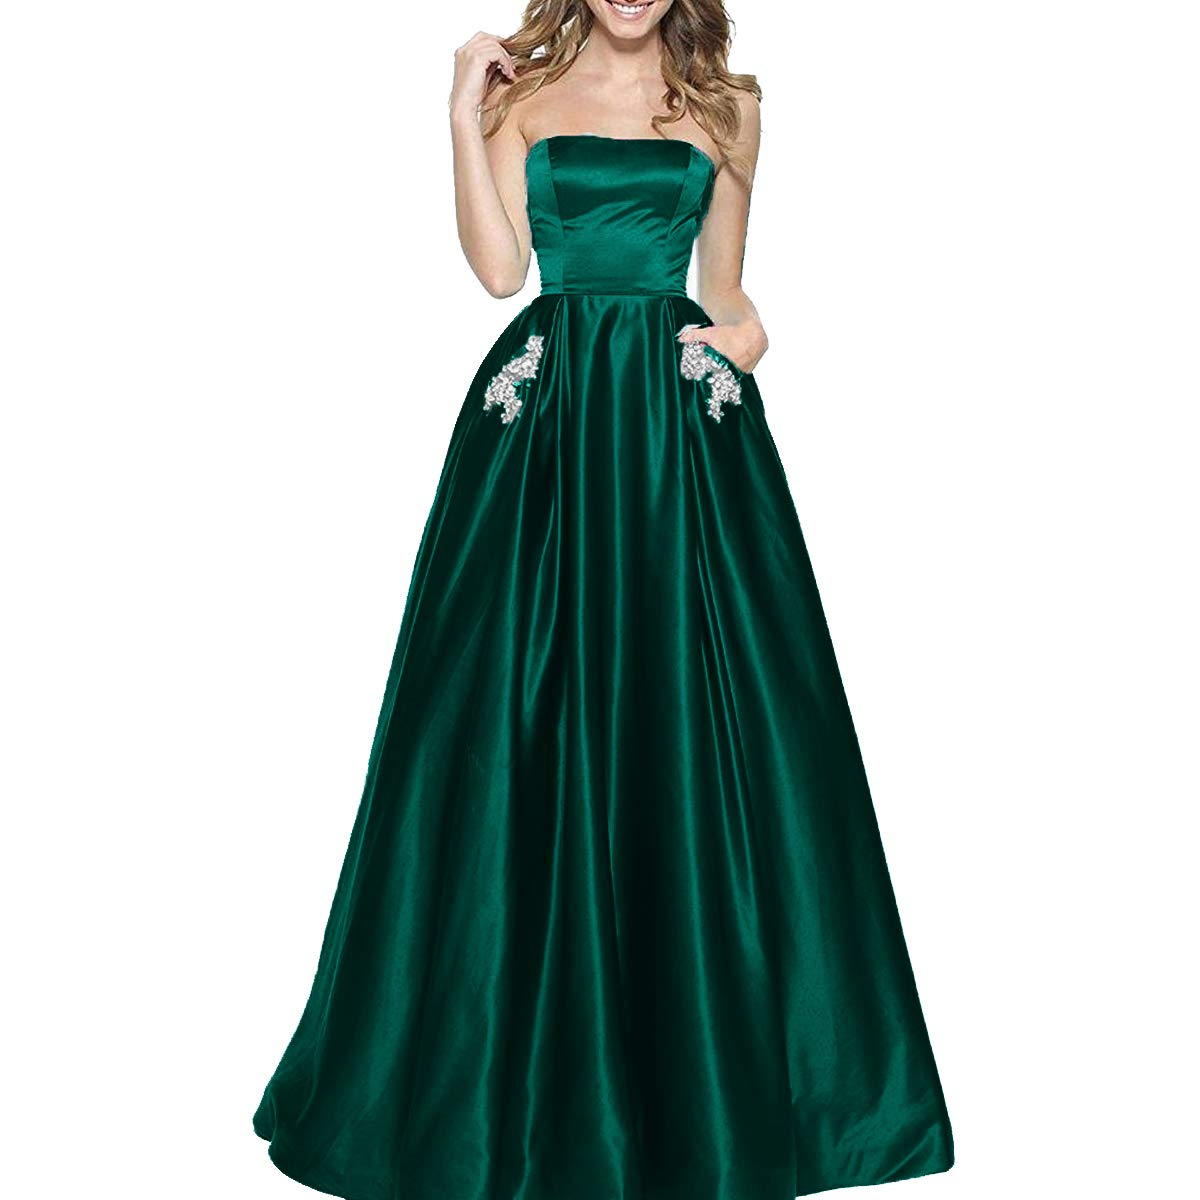 Teal bluee TTYbridal Women's ALine Strapless Beaded Prom Dresses Long Satin Homecoming Party Gown with Pockets